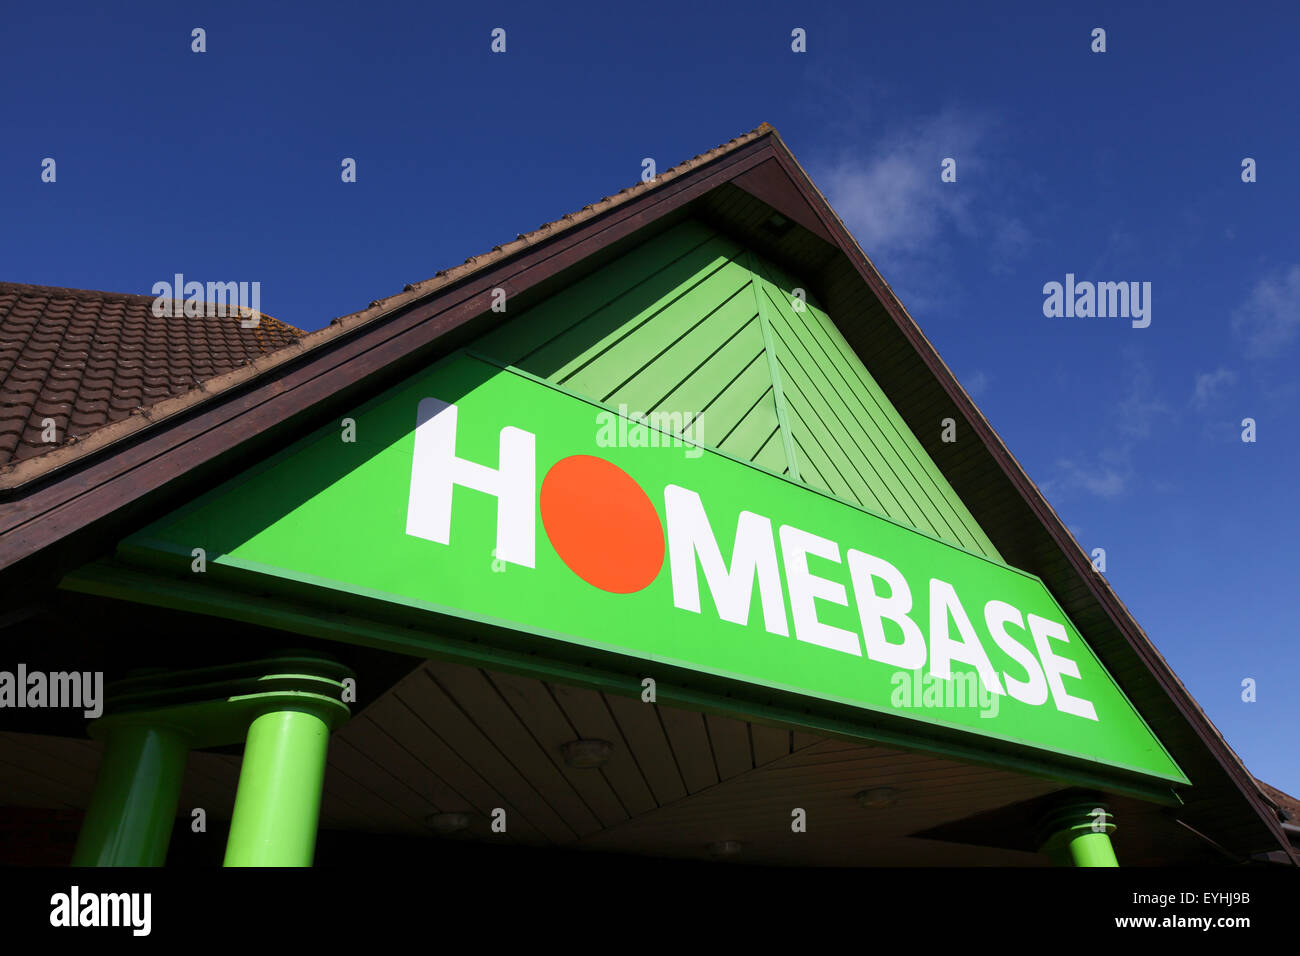 De l'extérieur d'un magasin Homebase à Southampton Photo Stock